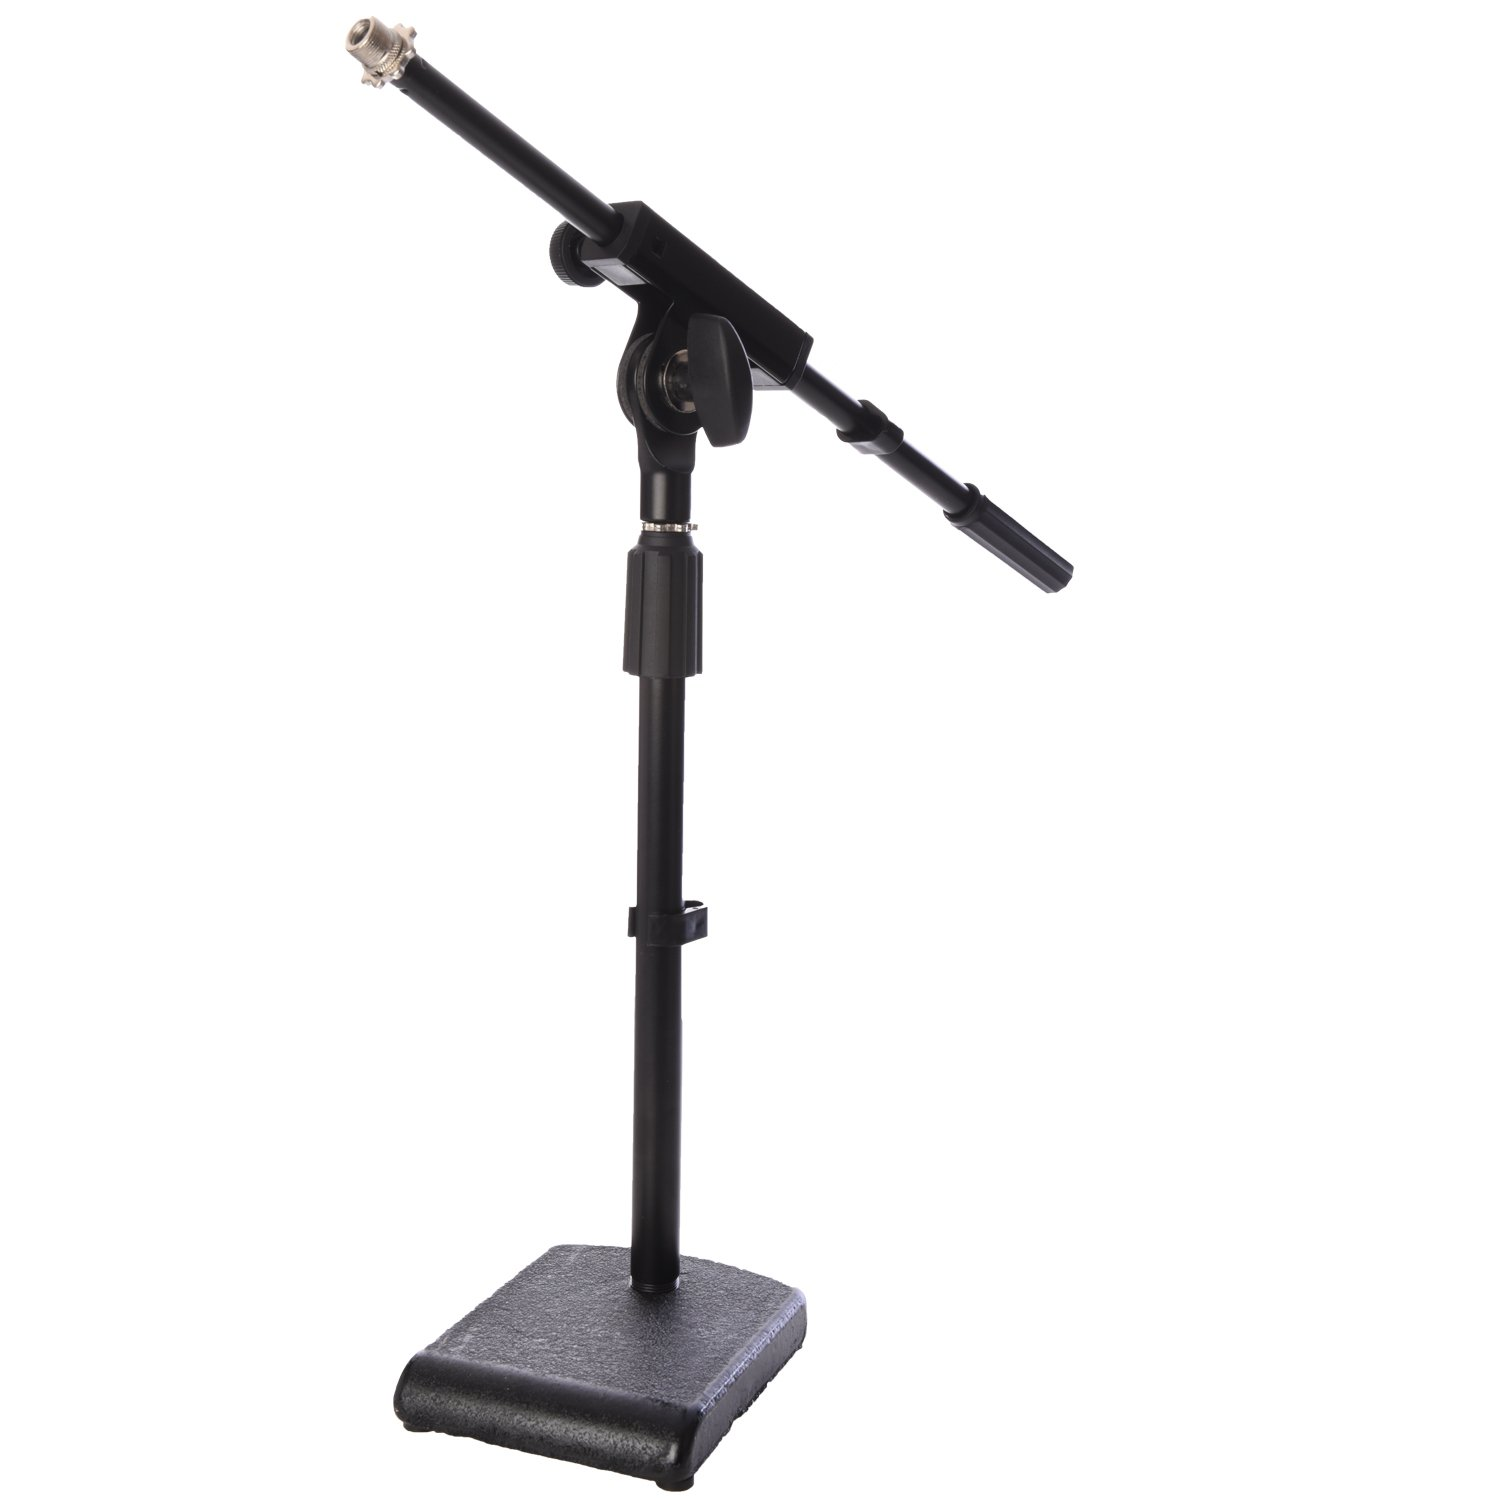 LyxPro KDS-1 Kick Drum Mic Stand, Low Profile Height adjustable Microphone Boom Stand, 3/8 and 5/8 threaded mounts for for Kick drums, Guitar Amps, and Desktop